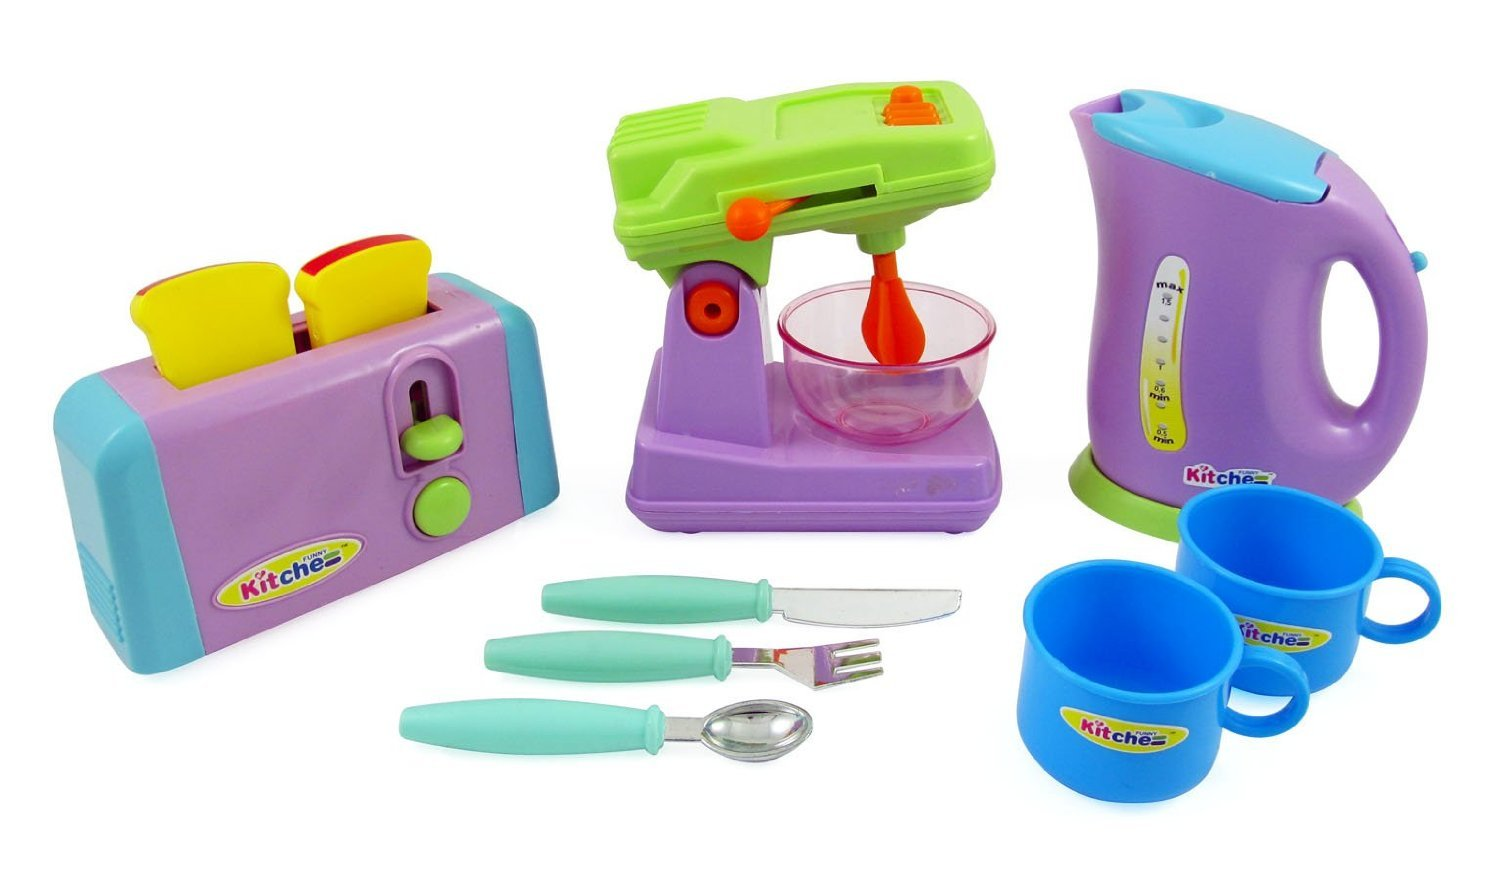 Kitchen Appliances Toy for kids - Mixer, Toaster, Kettle, Cups ...